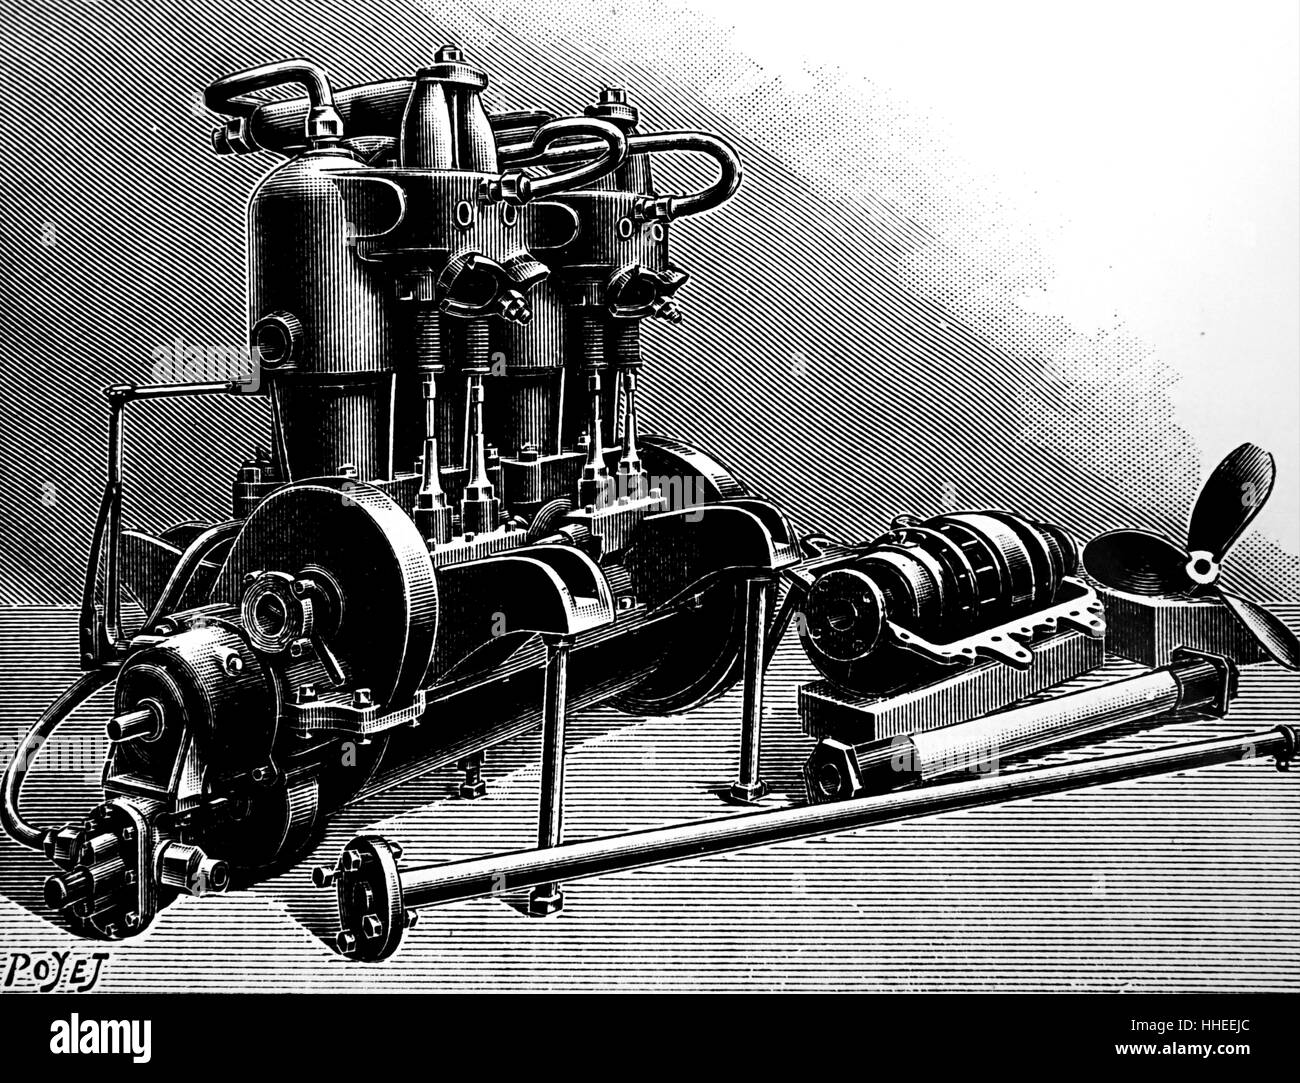 Motor Engine Petrol Stockfotos & Motor Engine Petrol Bilder - Alamy